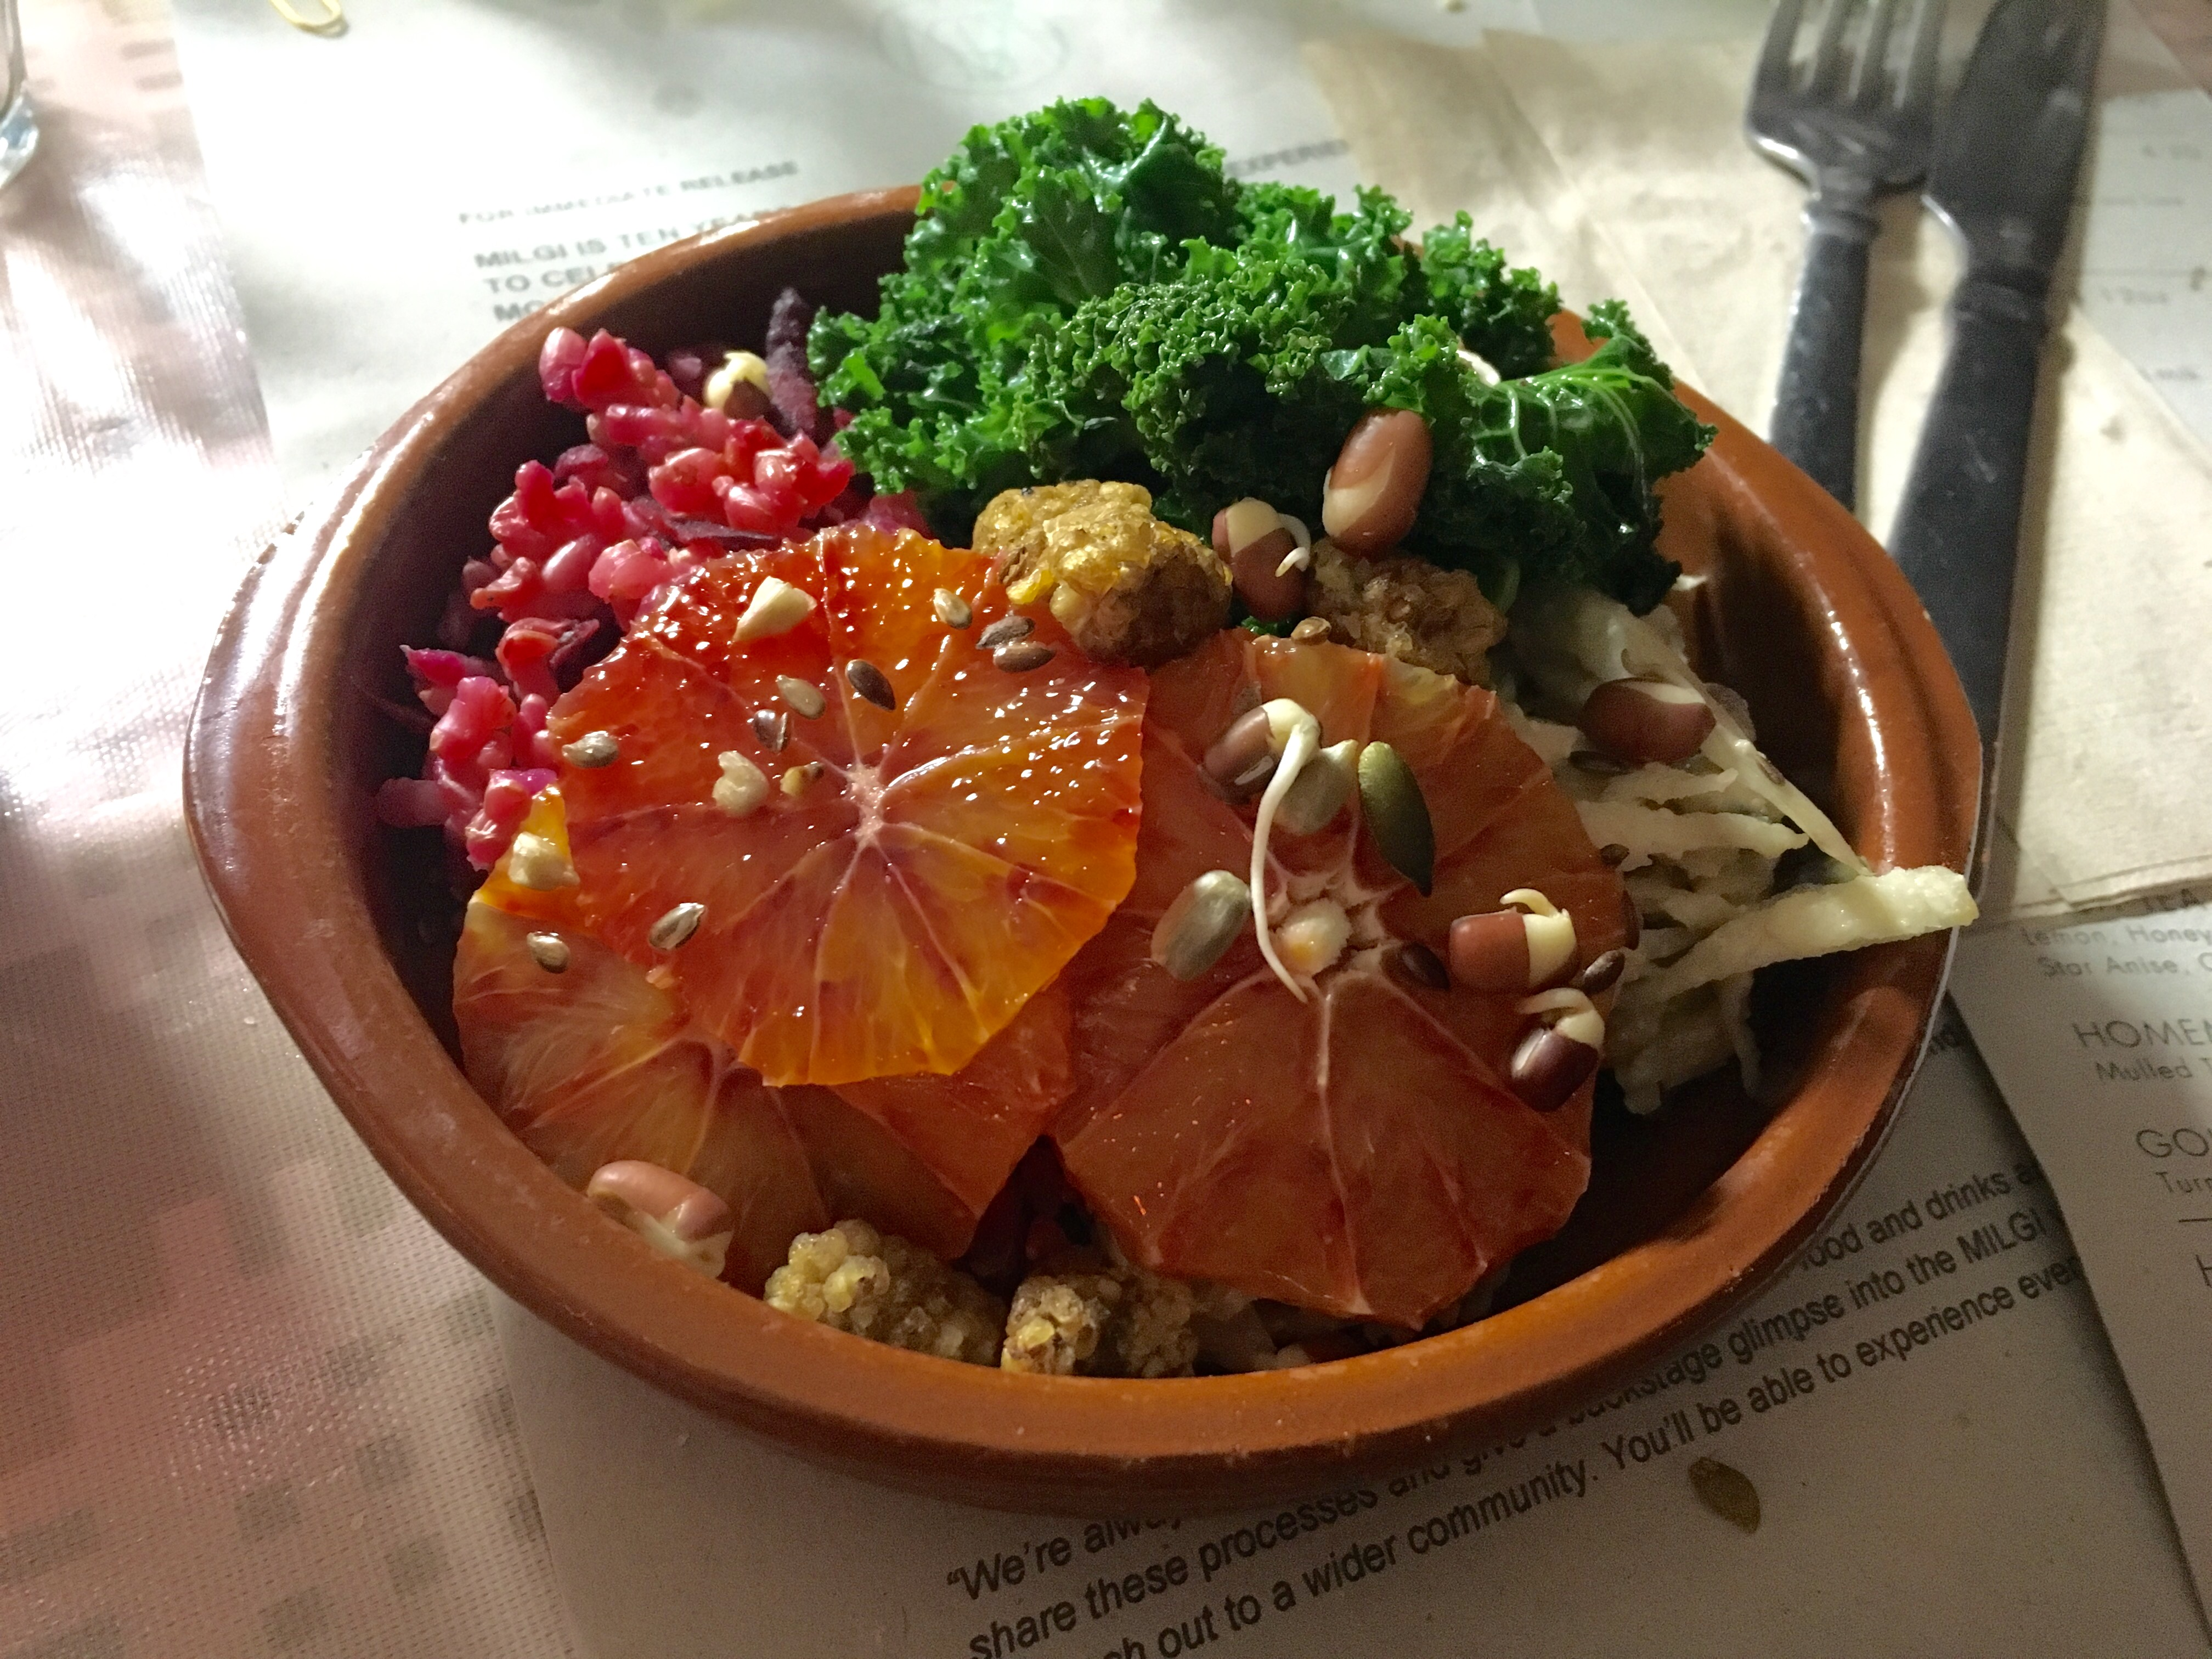 Wholefood bowl at Milgi